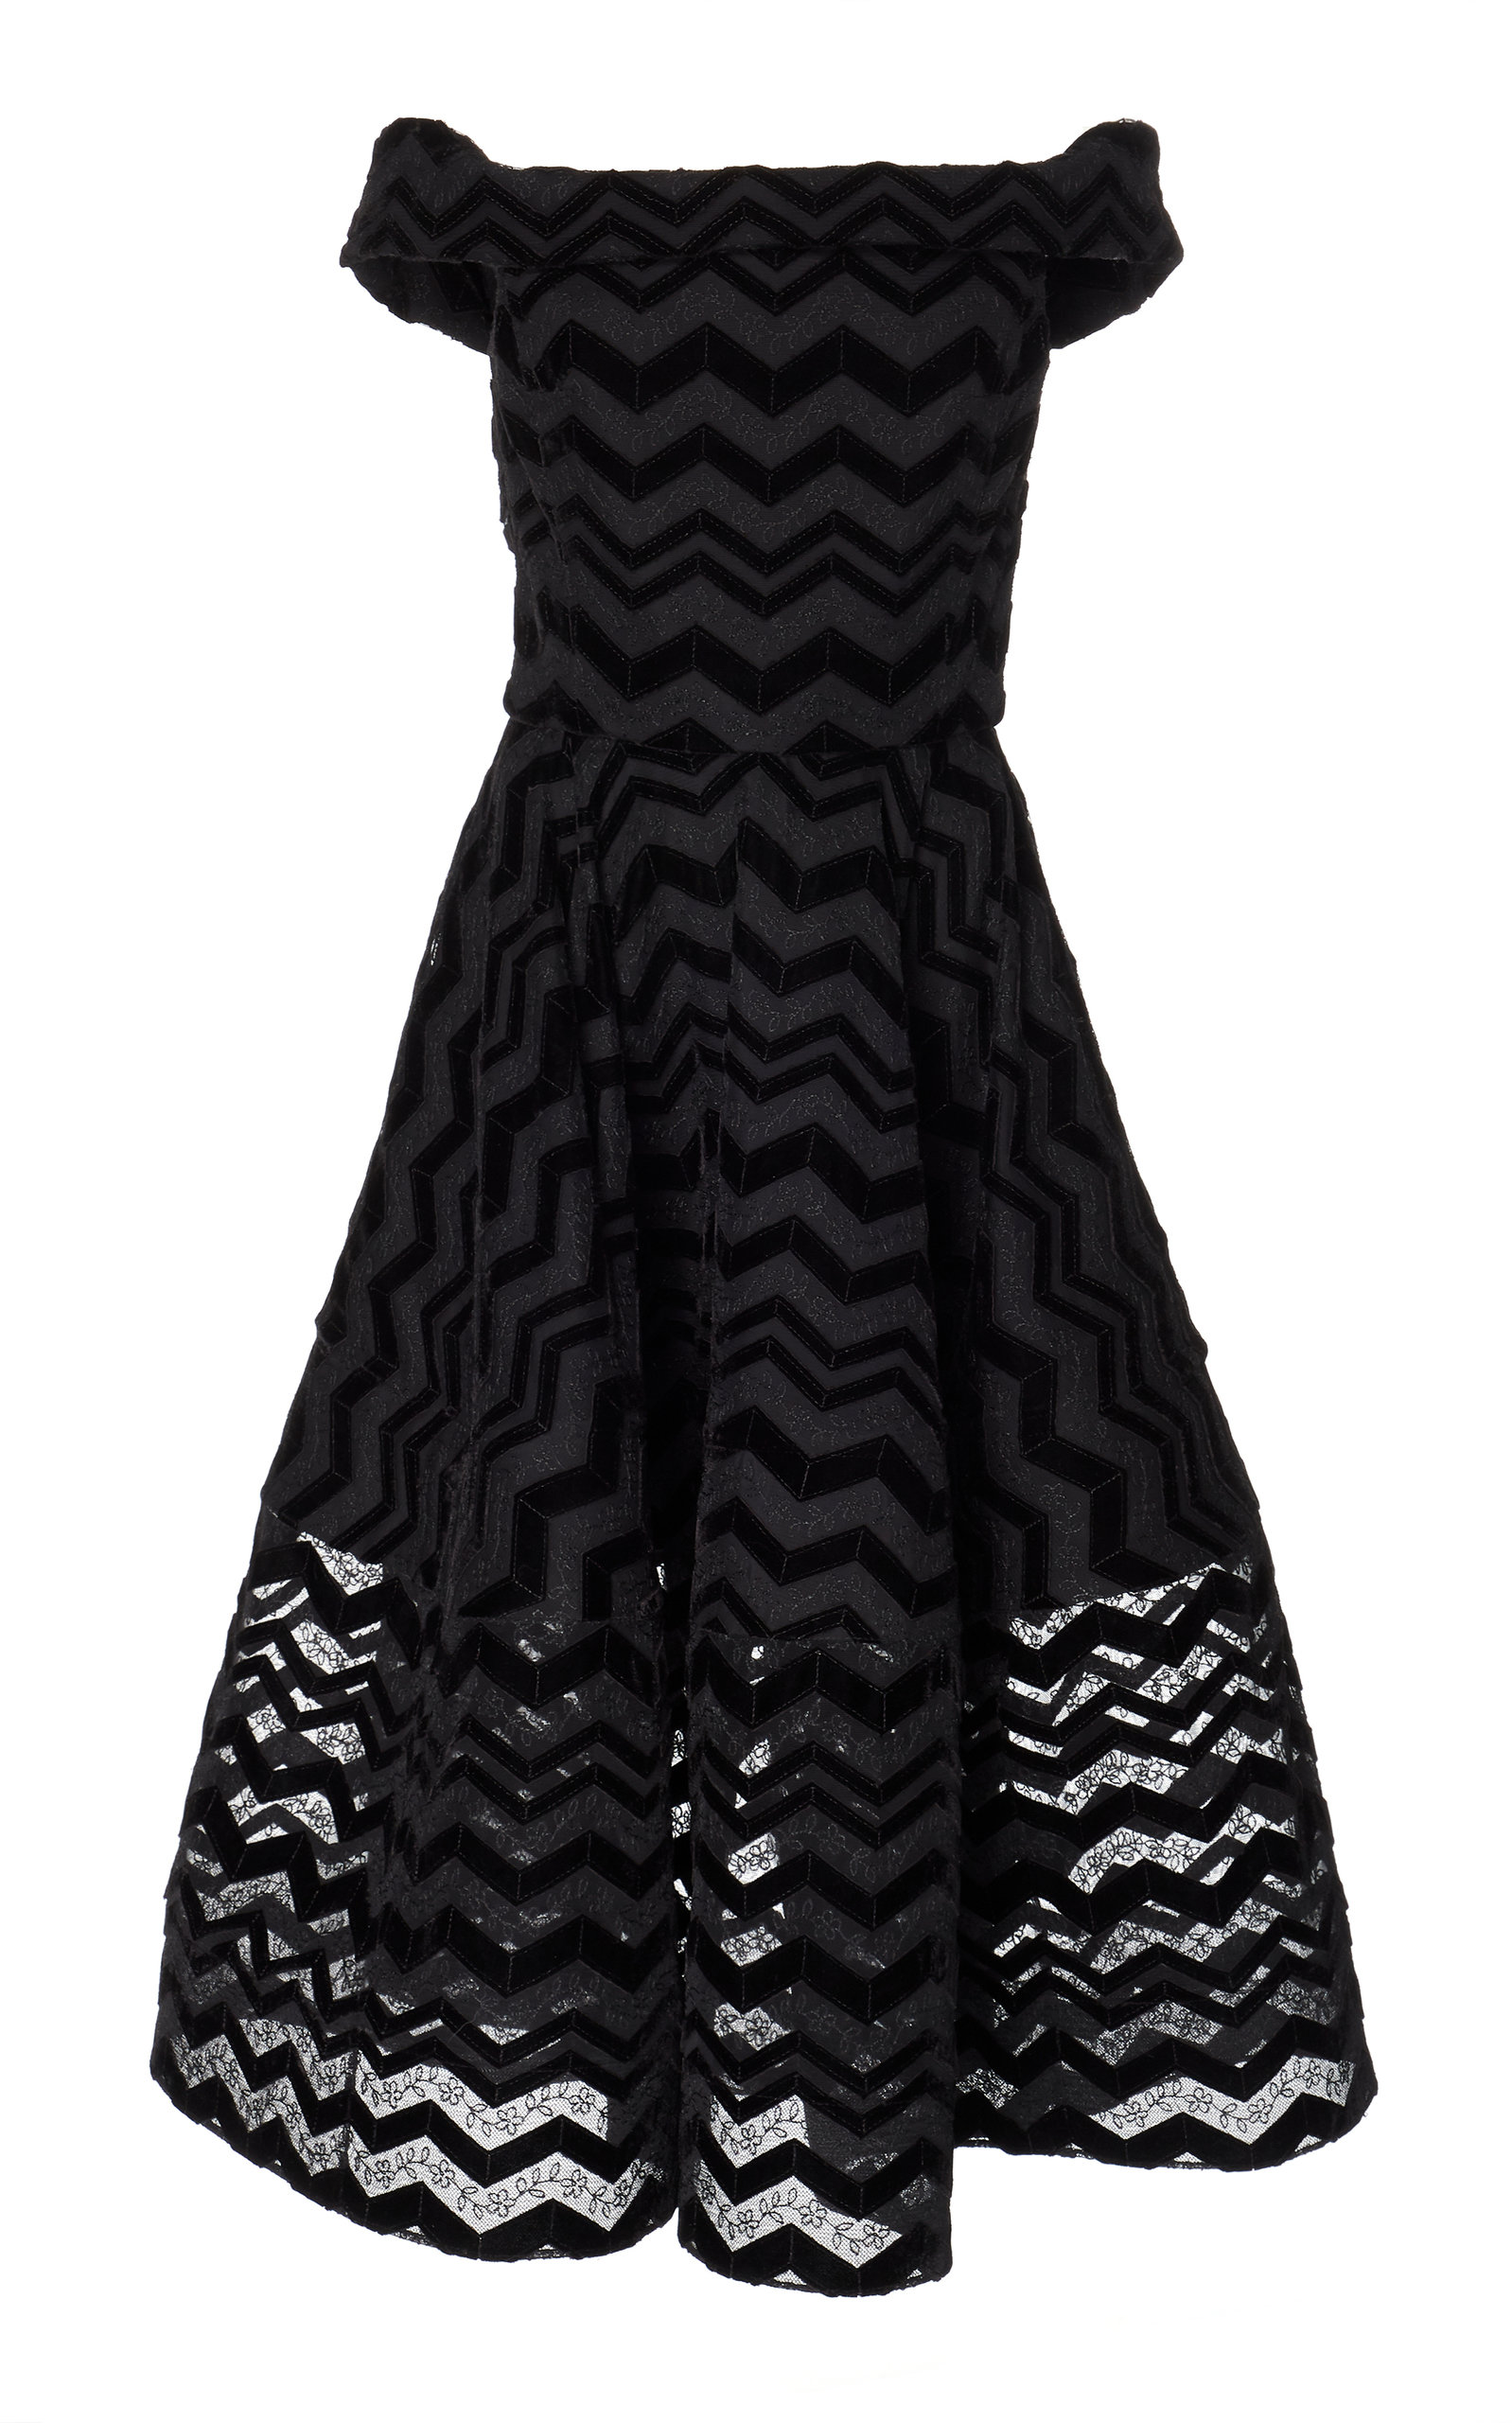 Christian Siriano ZIG ZAG BURNOUT VELVET OFF THE SHOULDER DRESS